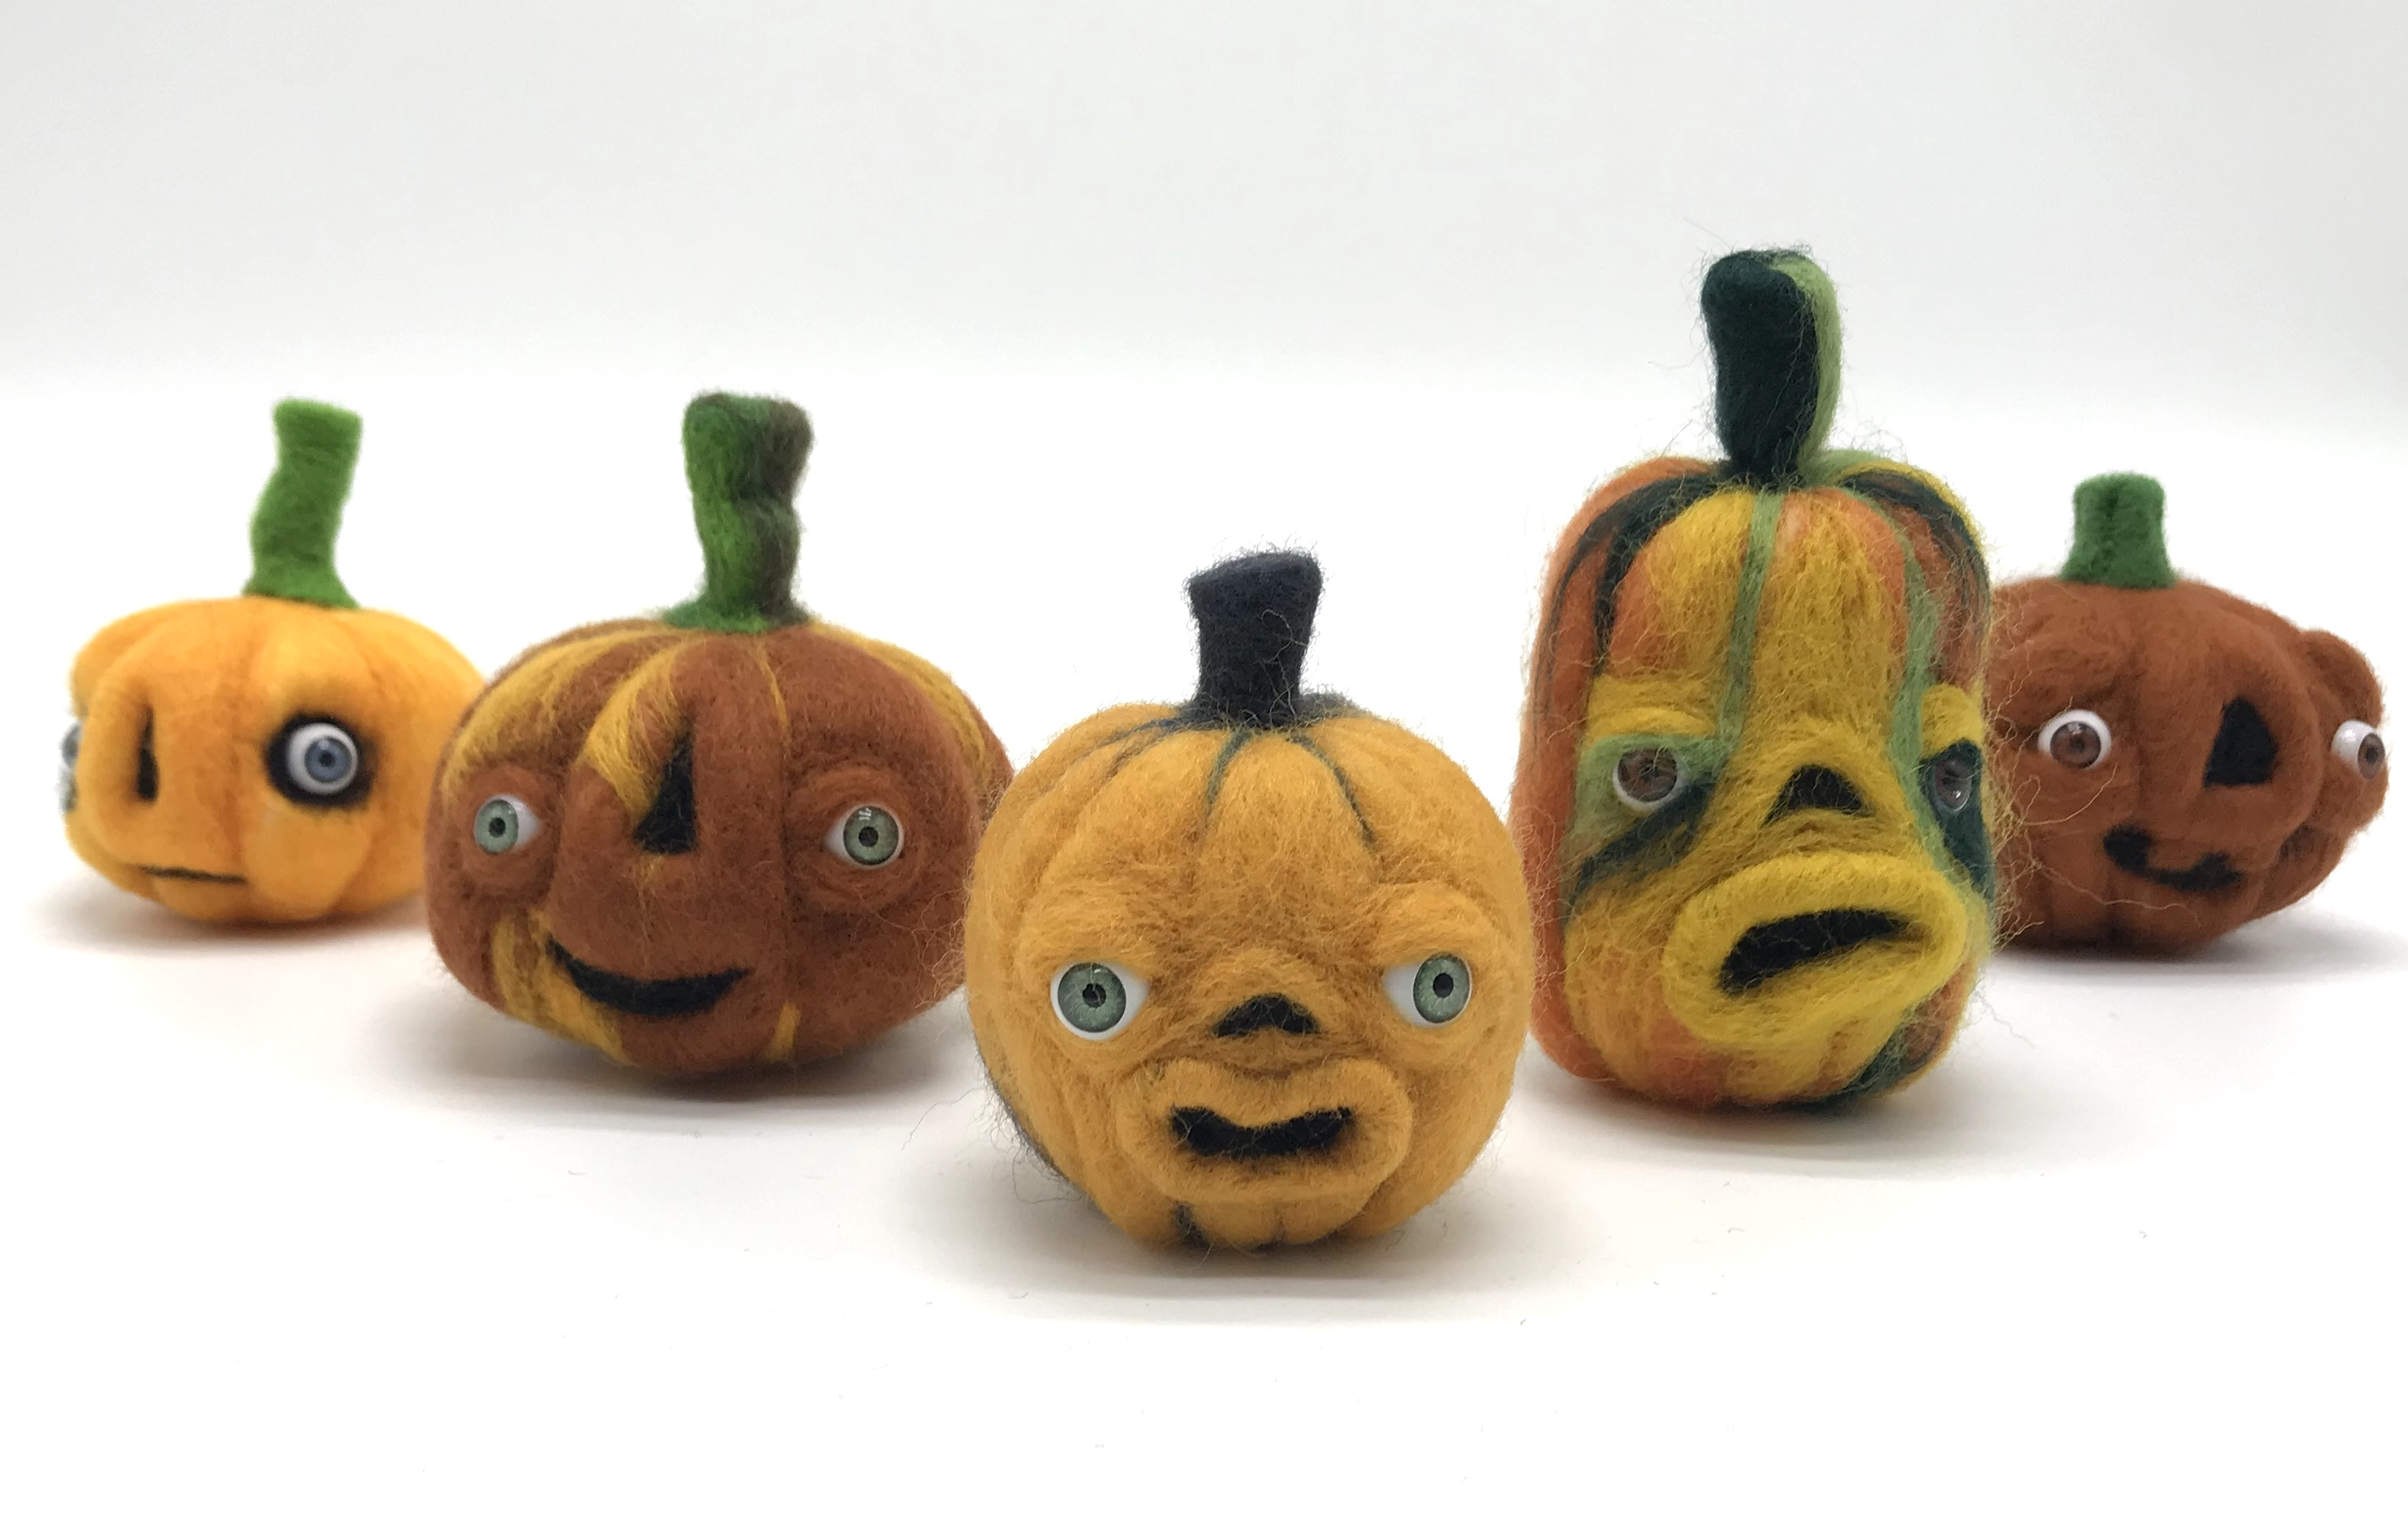 Needle-felted gourd friends